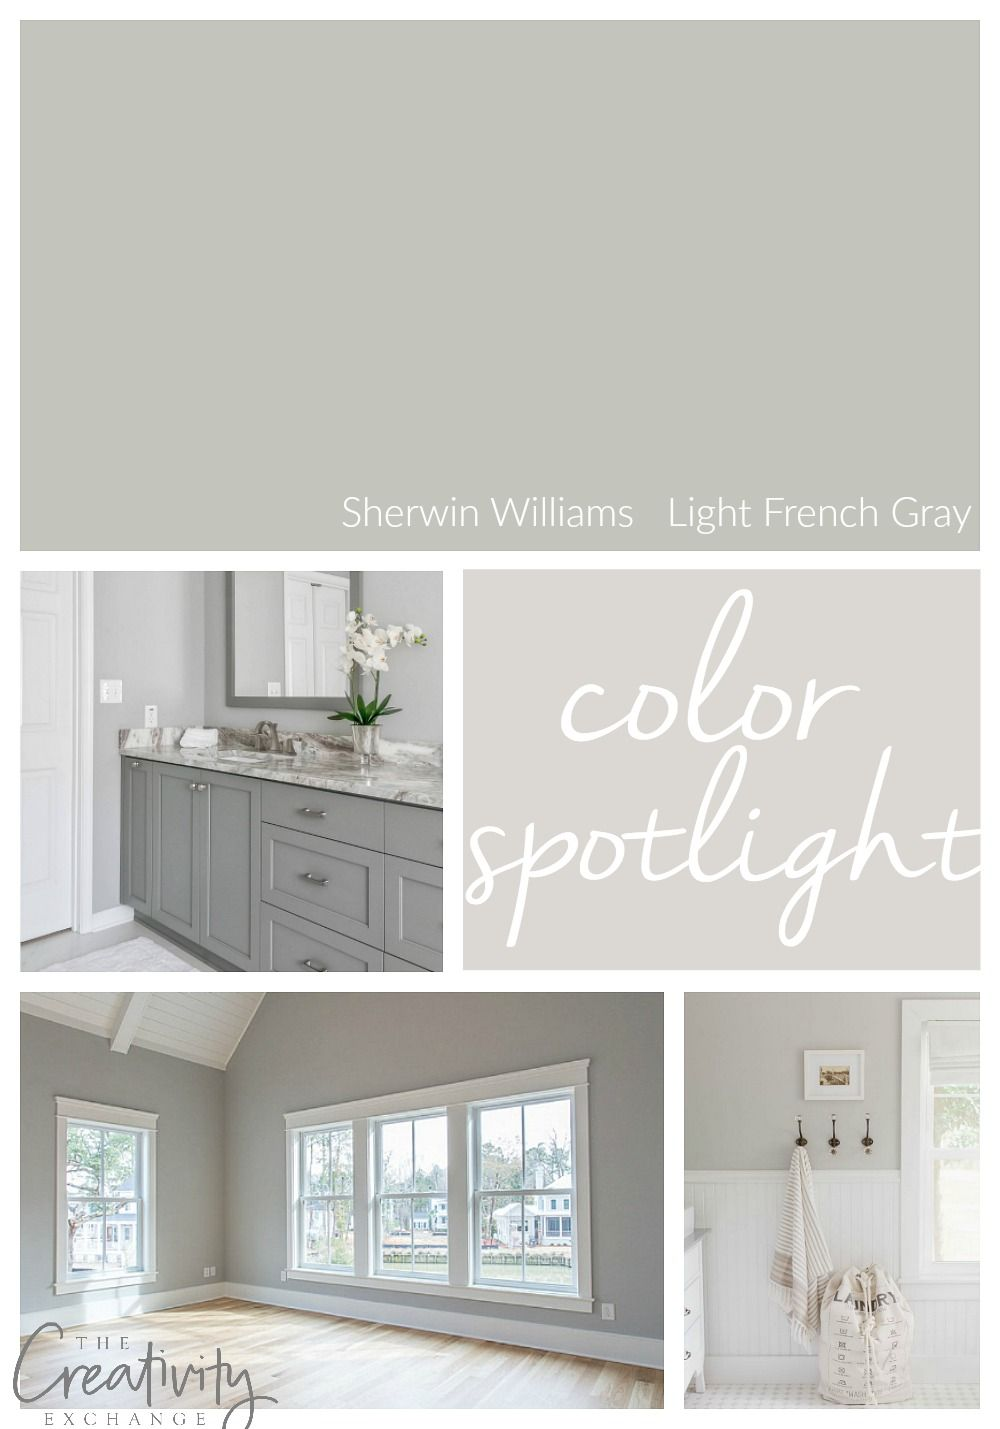 Sherwin Williams Light French Gray: Color Spotligh